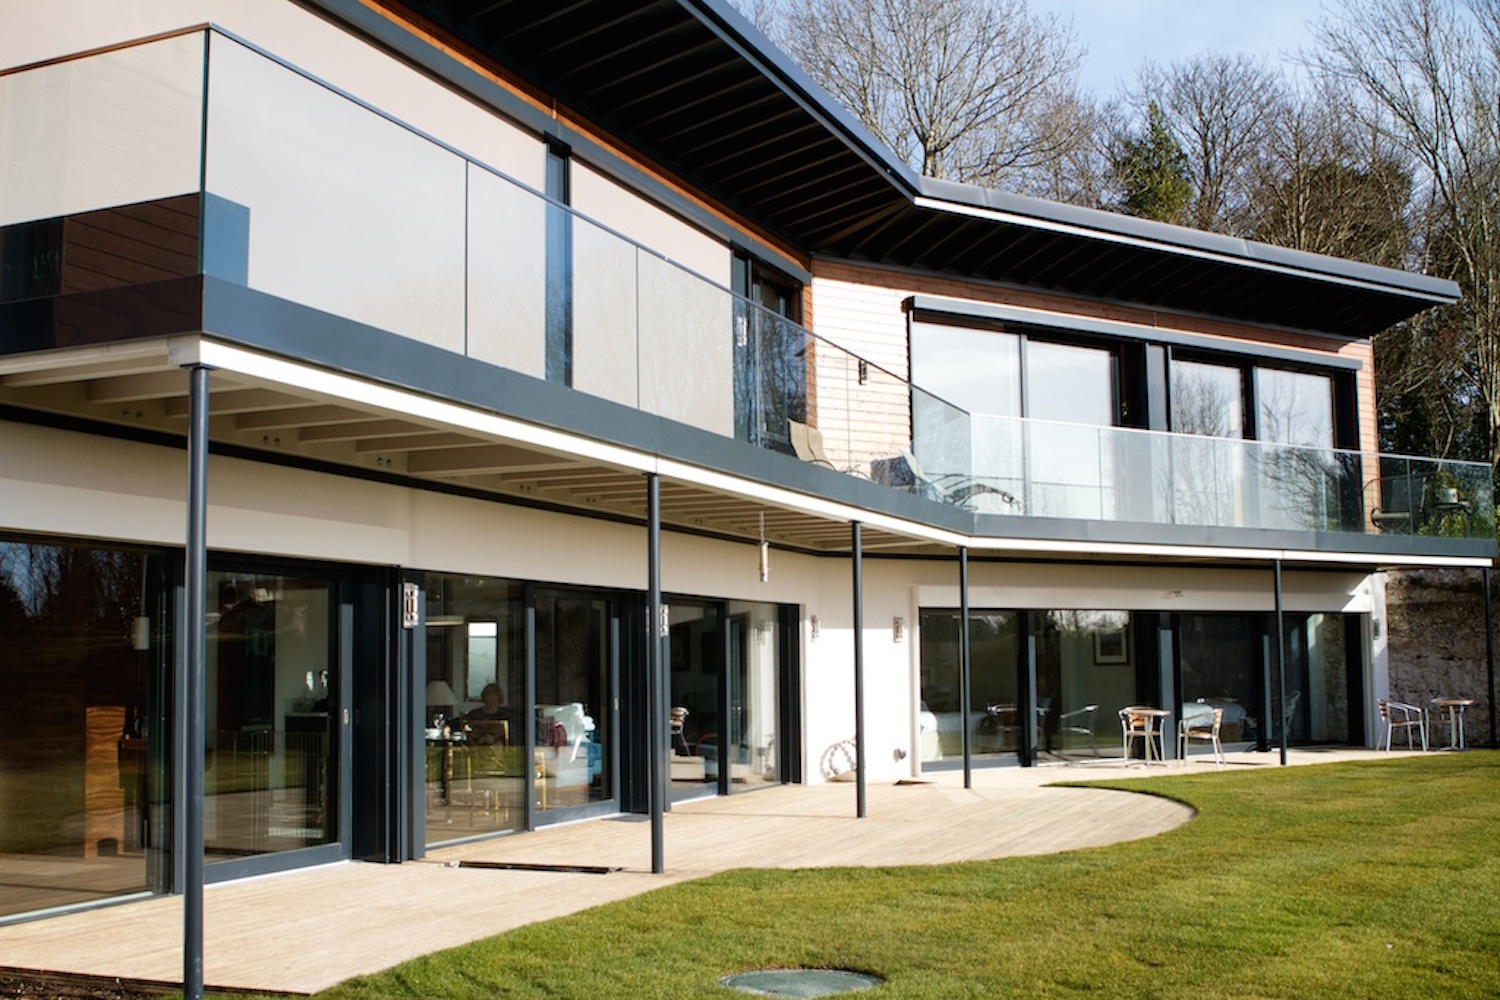 Skyhouse Sussex has 32 solar panels and a biomass boiler for heating among other sustainable features. Image: Sarah Weal